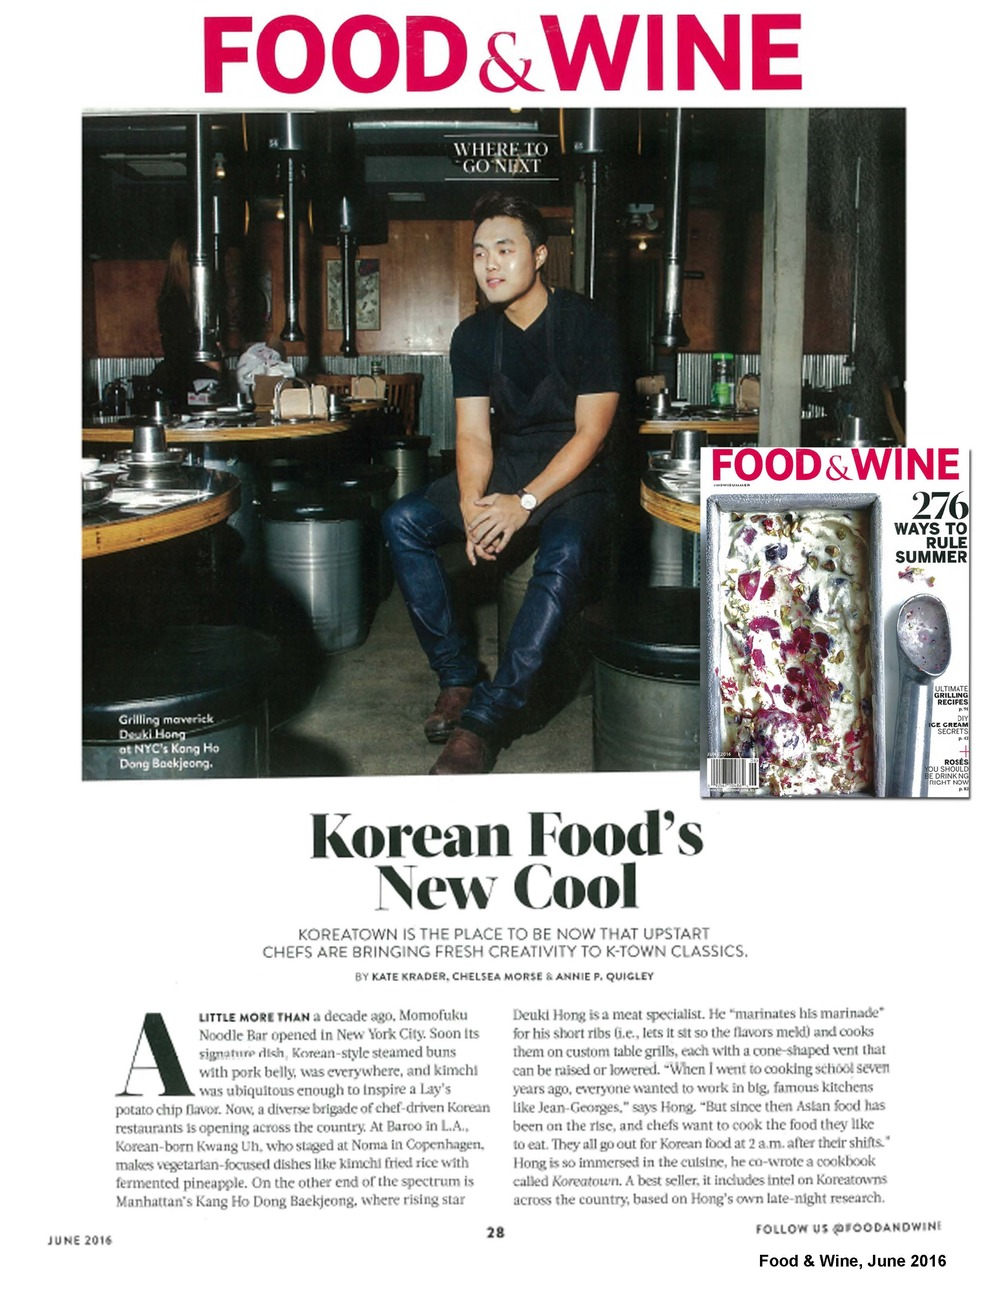 WEBSITE_Food and Wine_Koreatown_June 2016.jpg